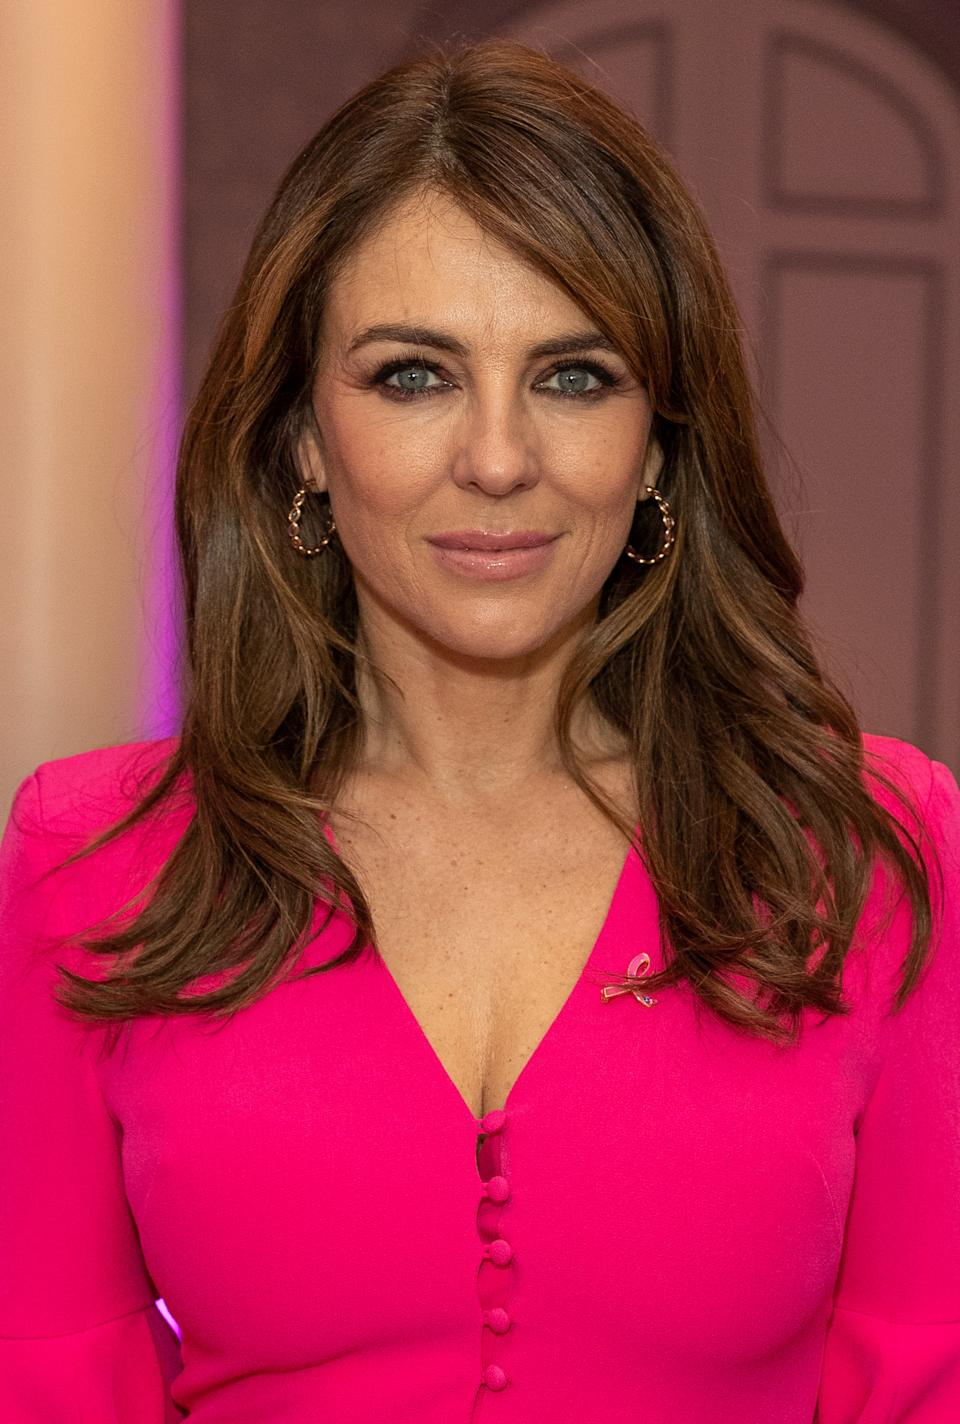 LONDON, ENGLAND - OCTOBER 07: Elizabeth Hurley attends the Future Dreams Ladies Lunch 2019 supported by Estee Lauder at The Savoy Hotel on October 7, 2019 in London, England. (Photo by David M. Benett/Dave Benett/Getty Images)